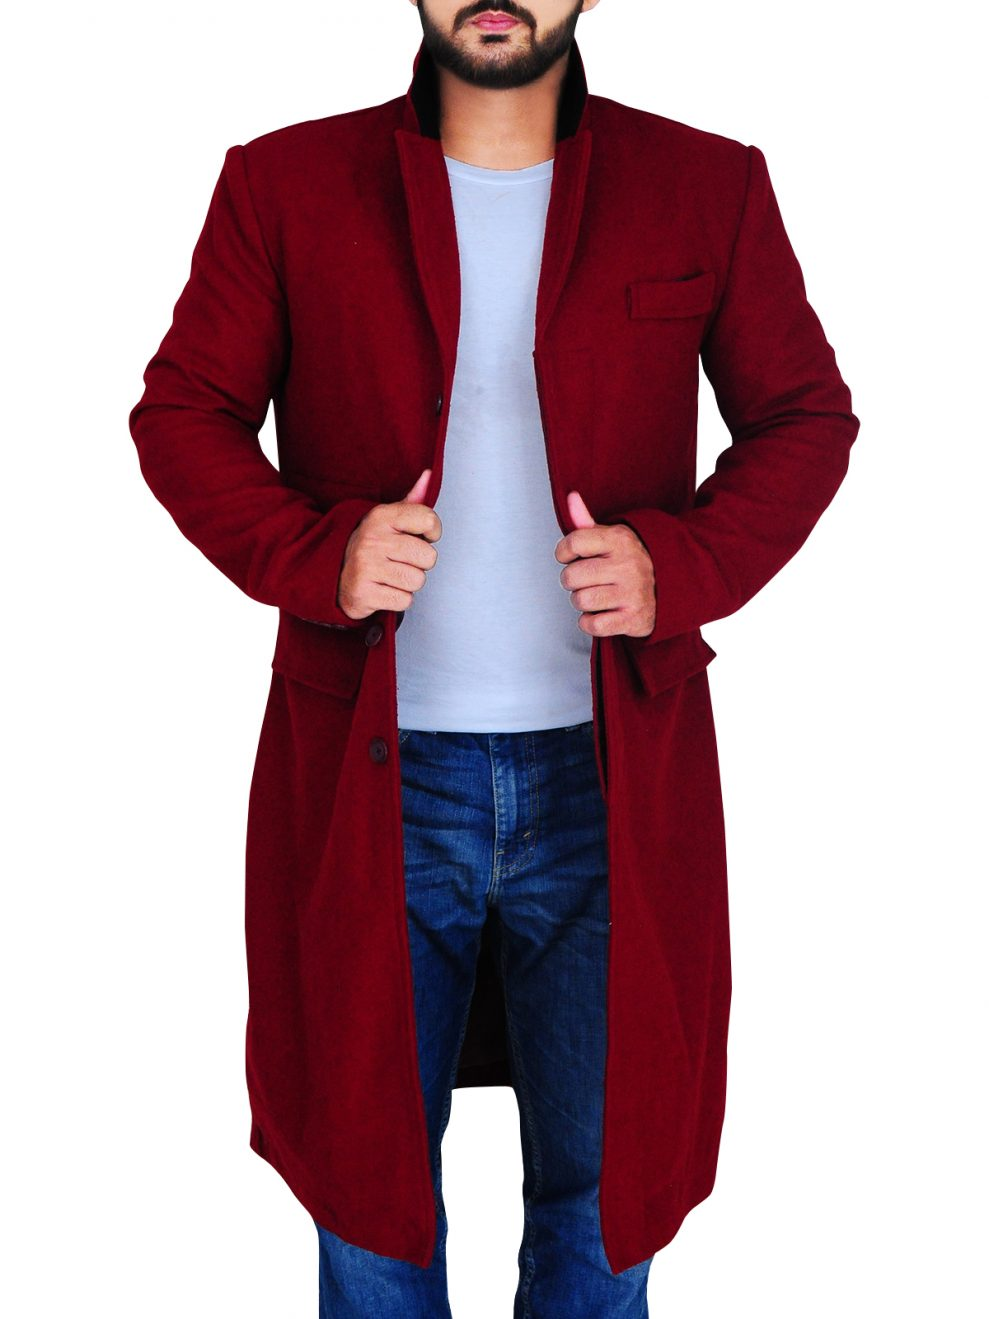 Hugh Jackman The Greatest Showman Long Coat